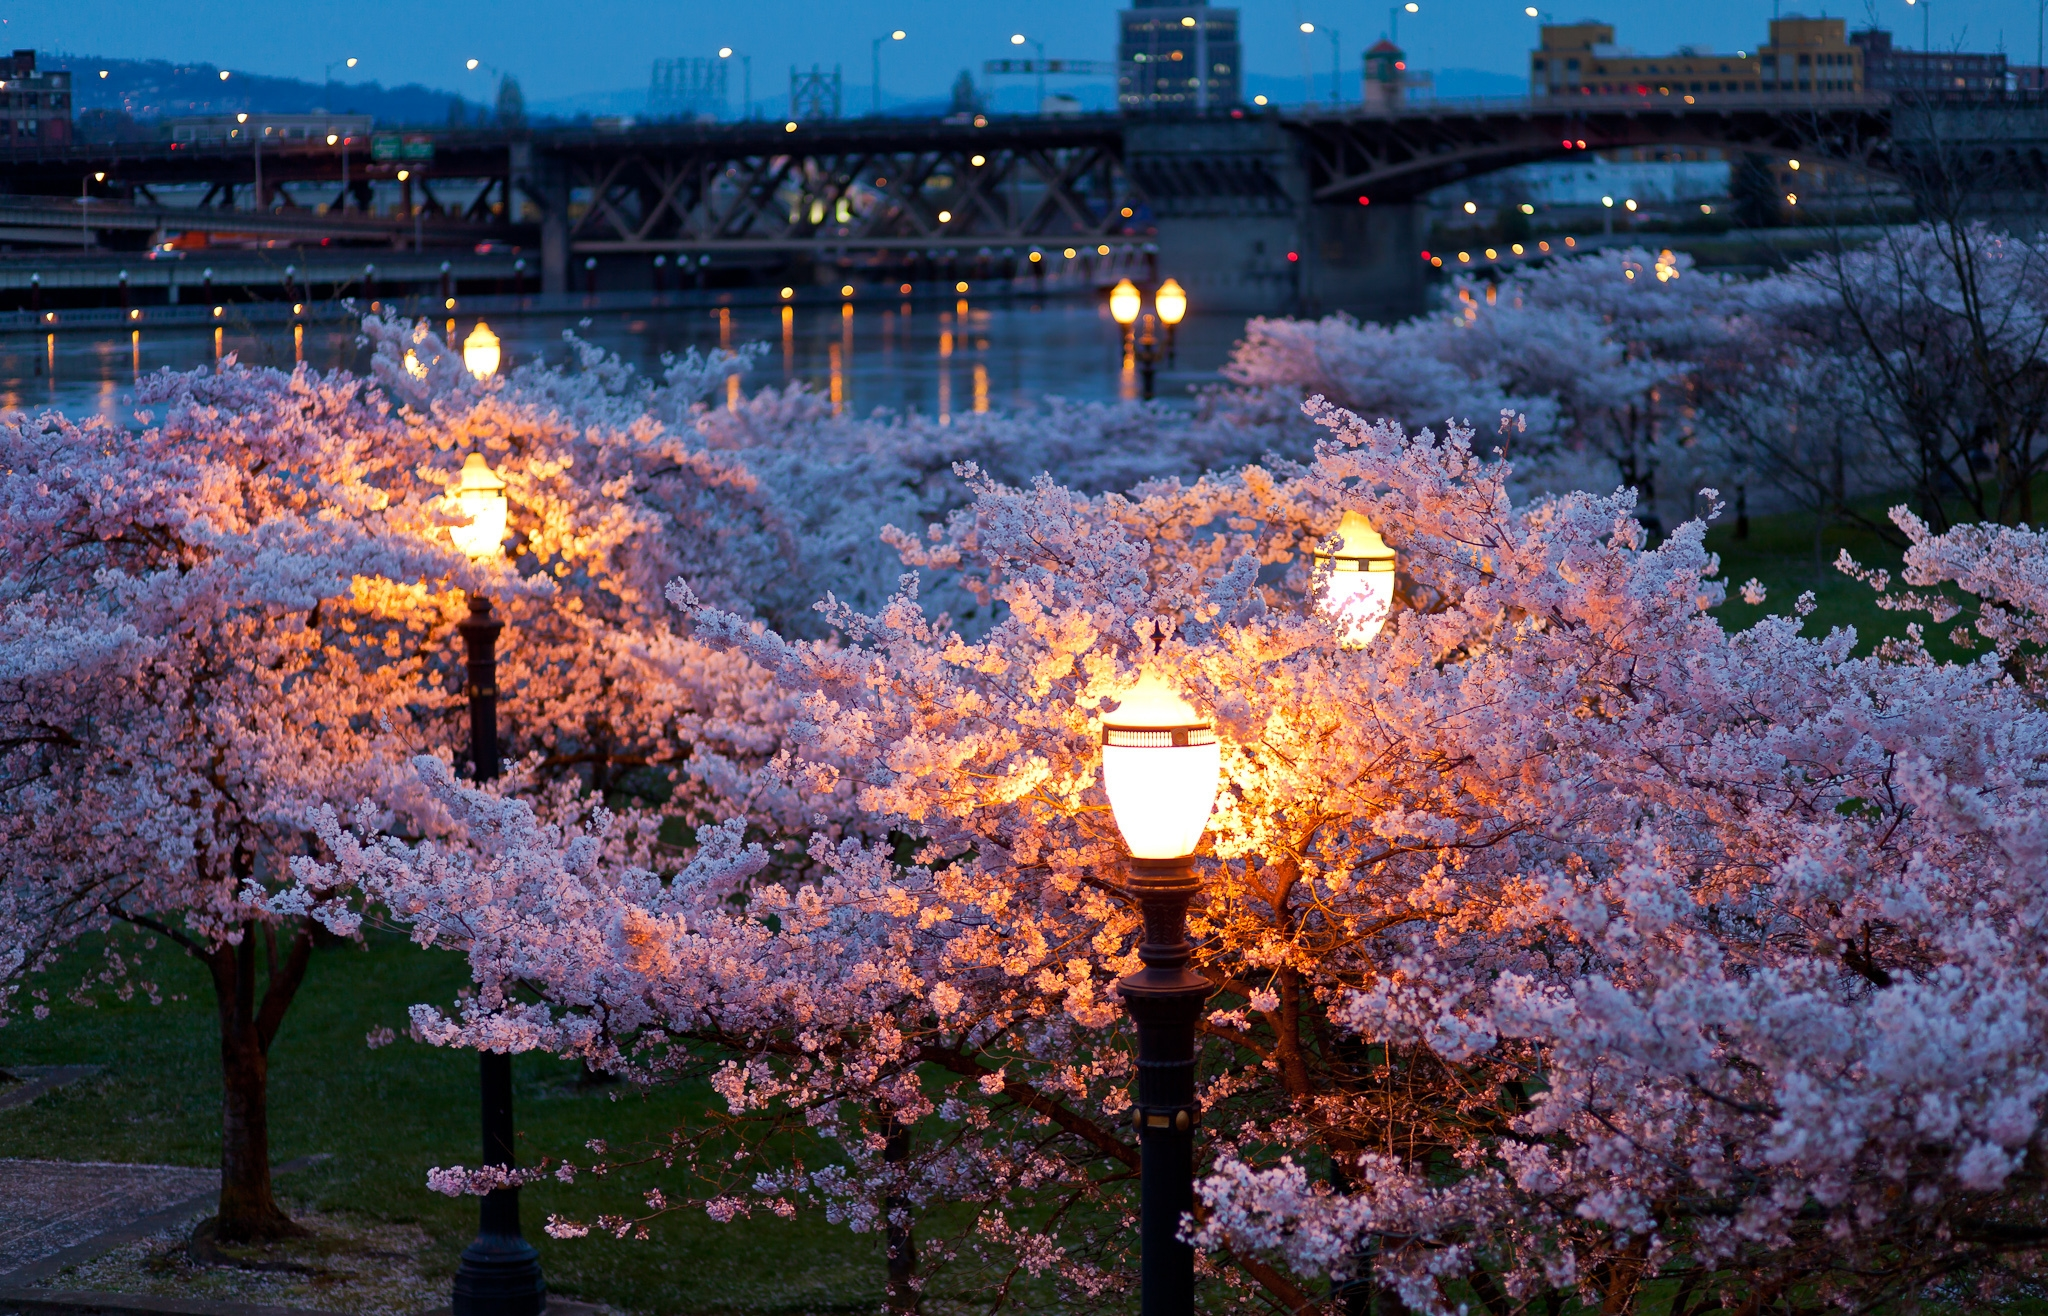 76162 download wallpaper Cities, Rivers, Bridges, Trees, Night, City, Lights, Park, Lanterns, Bloom, Color, Evening, Spring screensavers and pictures for free